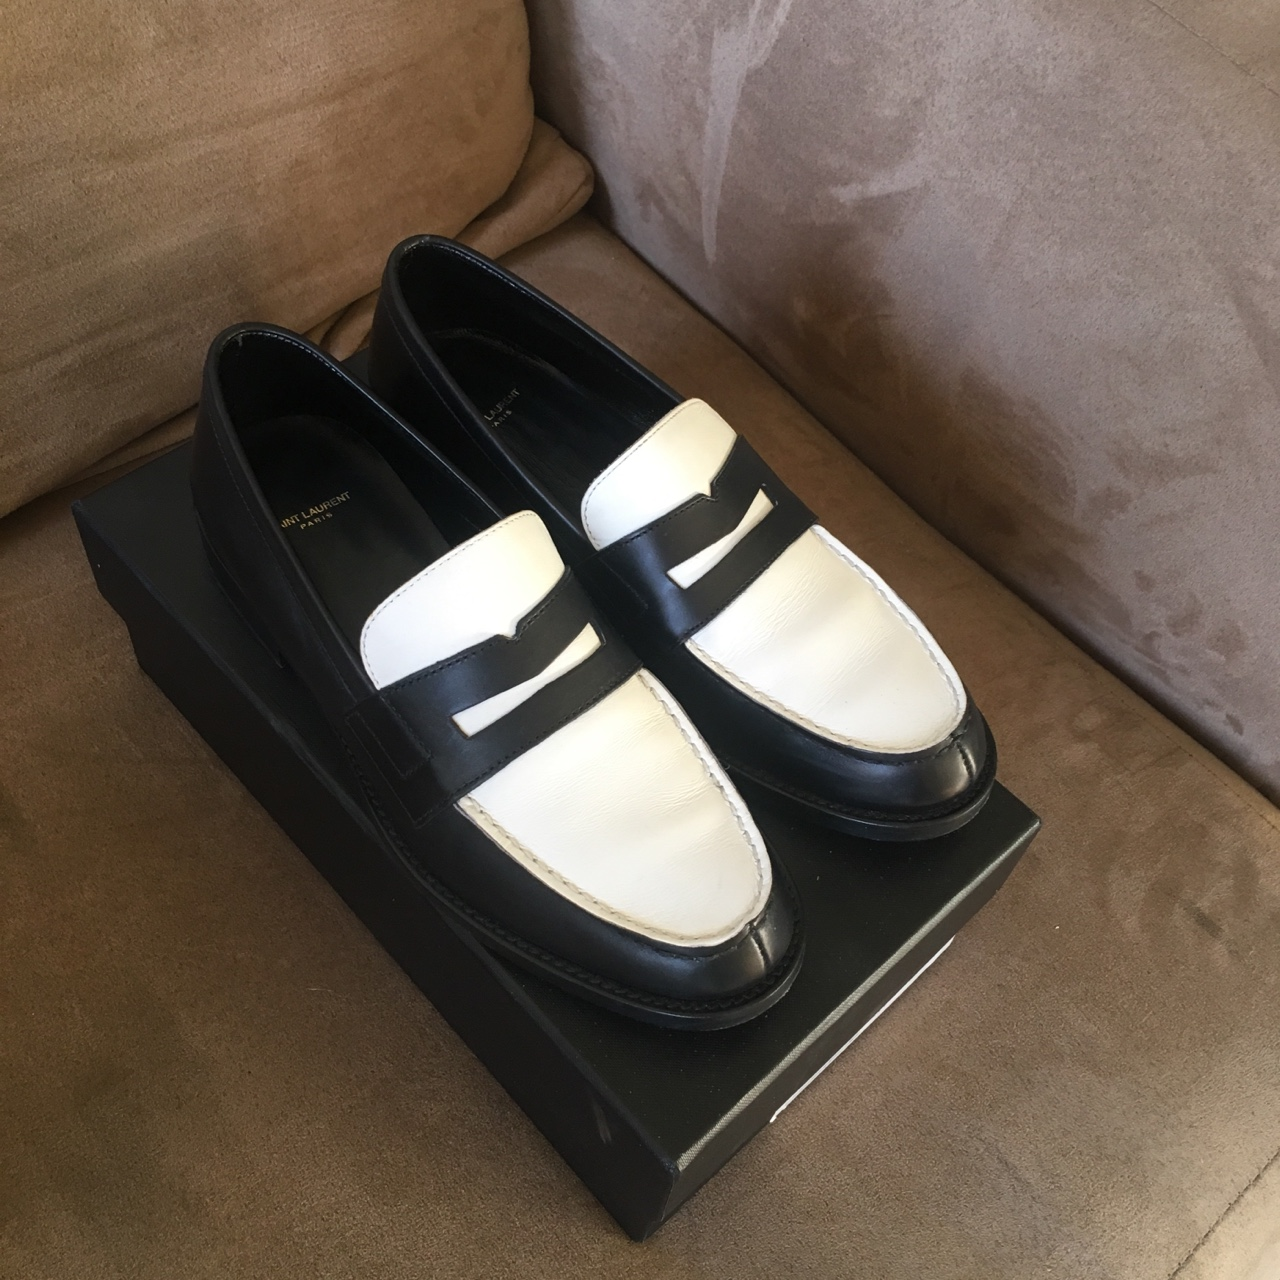 279dce9b4b511 breakfastteam. Los Angeles, United States. Saint Laurent two tone penny  loafers ...